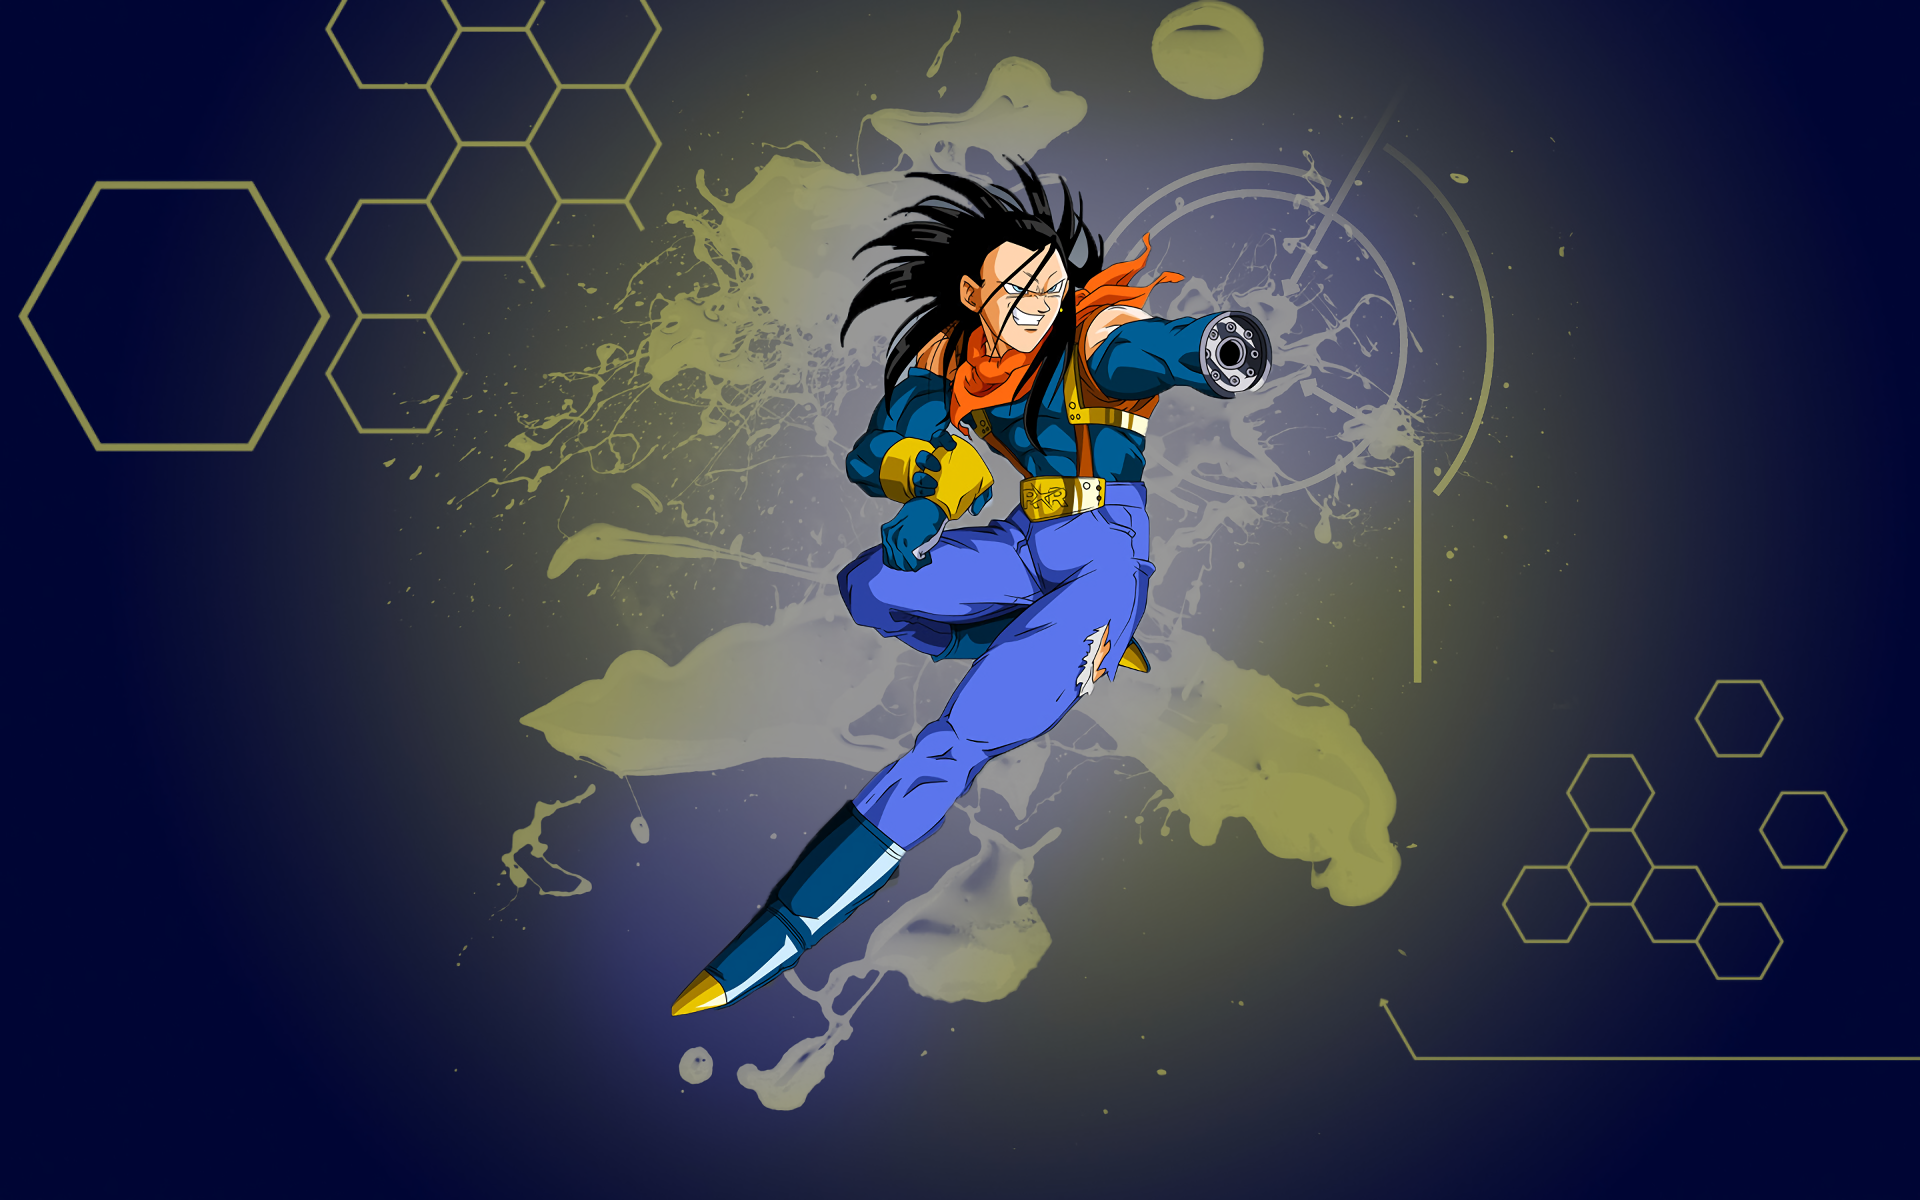 Dragon Ball Super Wallpaper Android: Dragon Ball GT HD Wallpaper